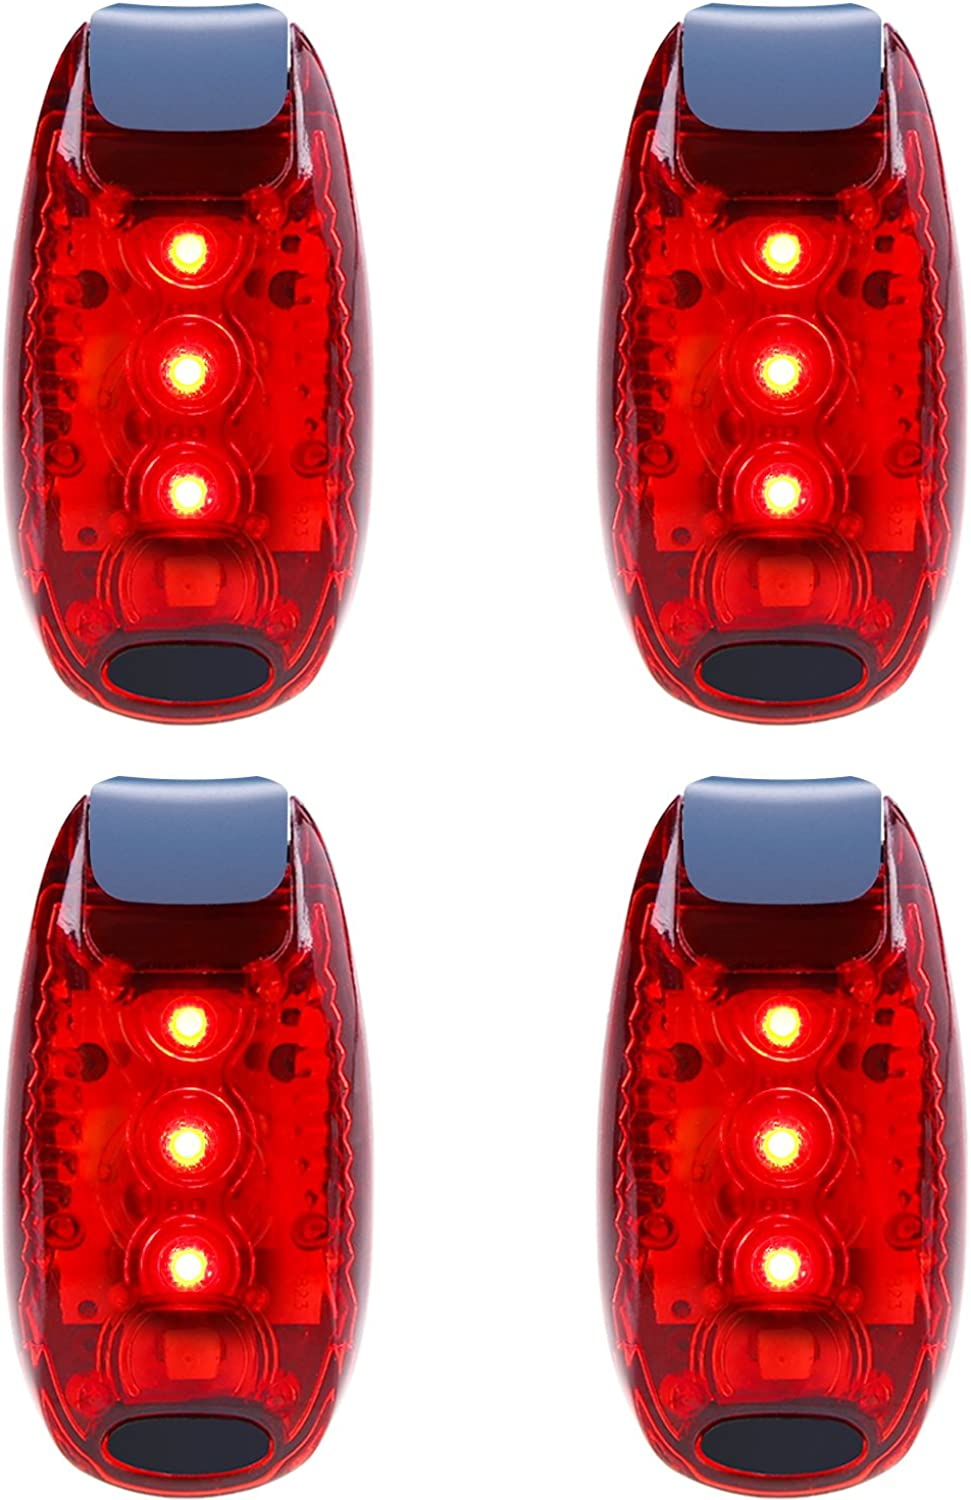 Belia E lucvy LED Safety Light 4 Pack Waterproof Red Flashing Bike Rear Tail Light with Free Clip on Velcro Straps for Running, Walking, Cycling, Helmet etc